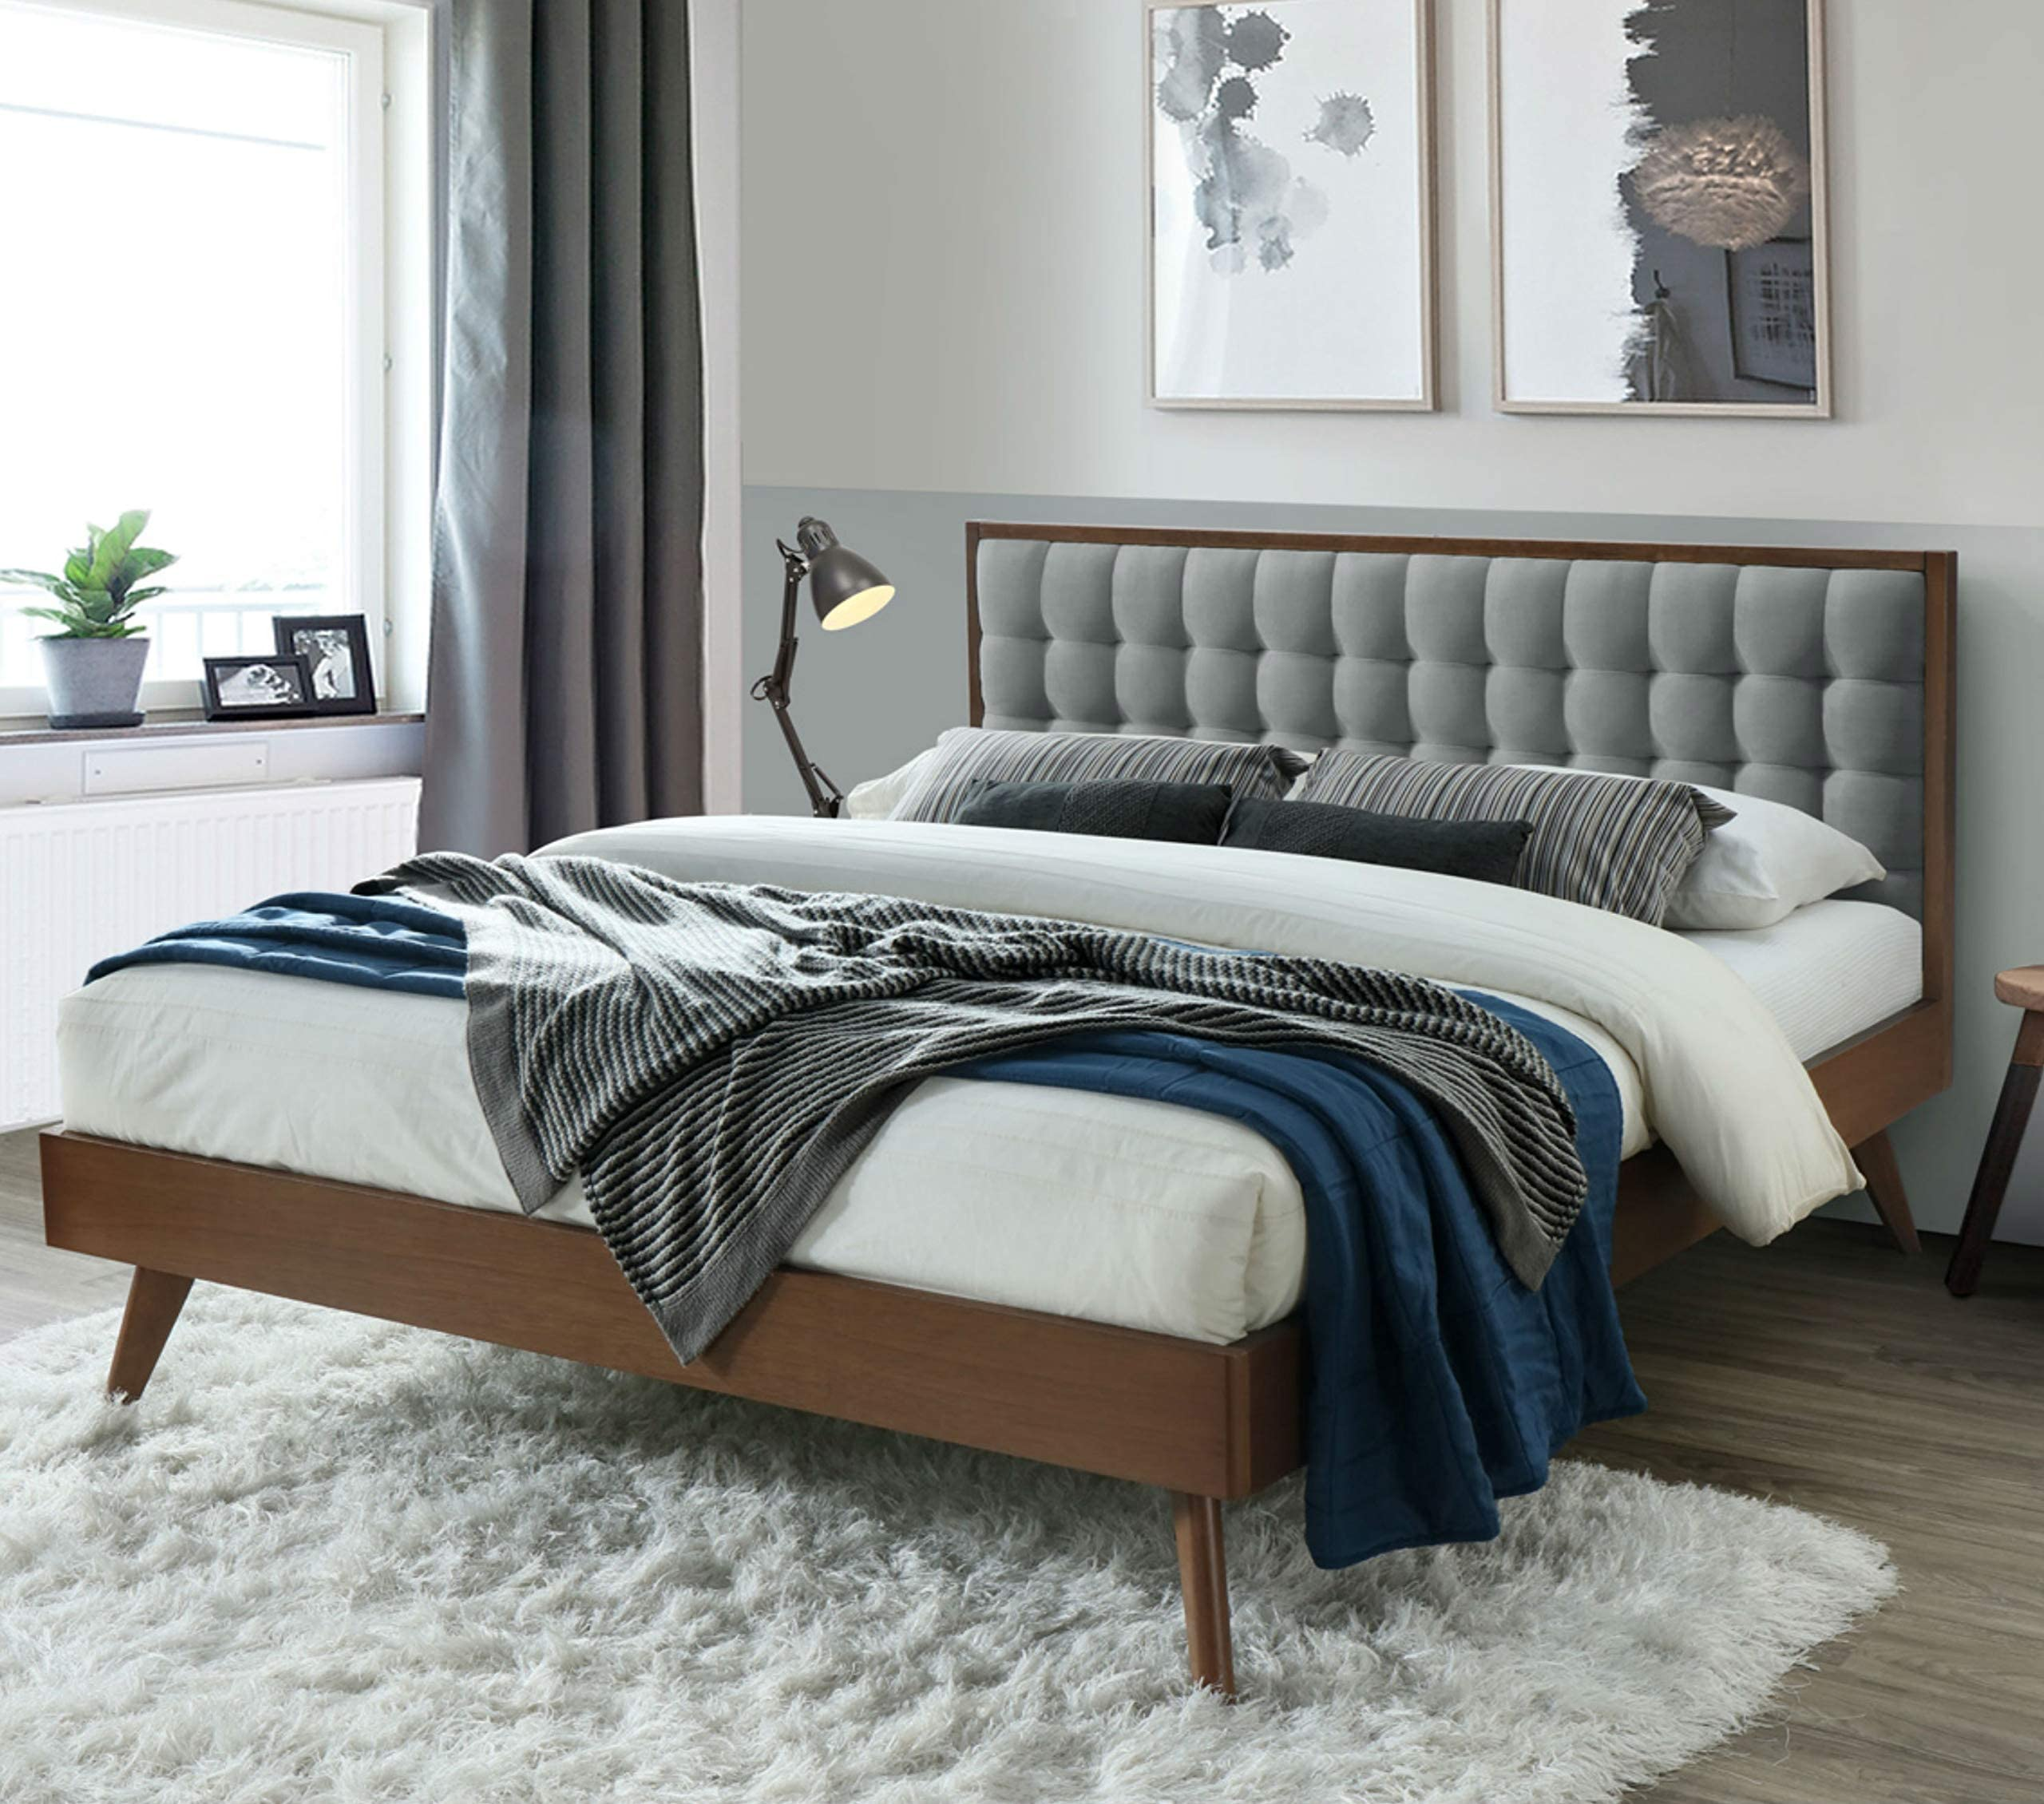 DG Casa Soloman Mid Century Modern Tufted Upholstered Platform Bed Frame, King Size in Grey Fabric, Gray